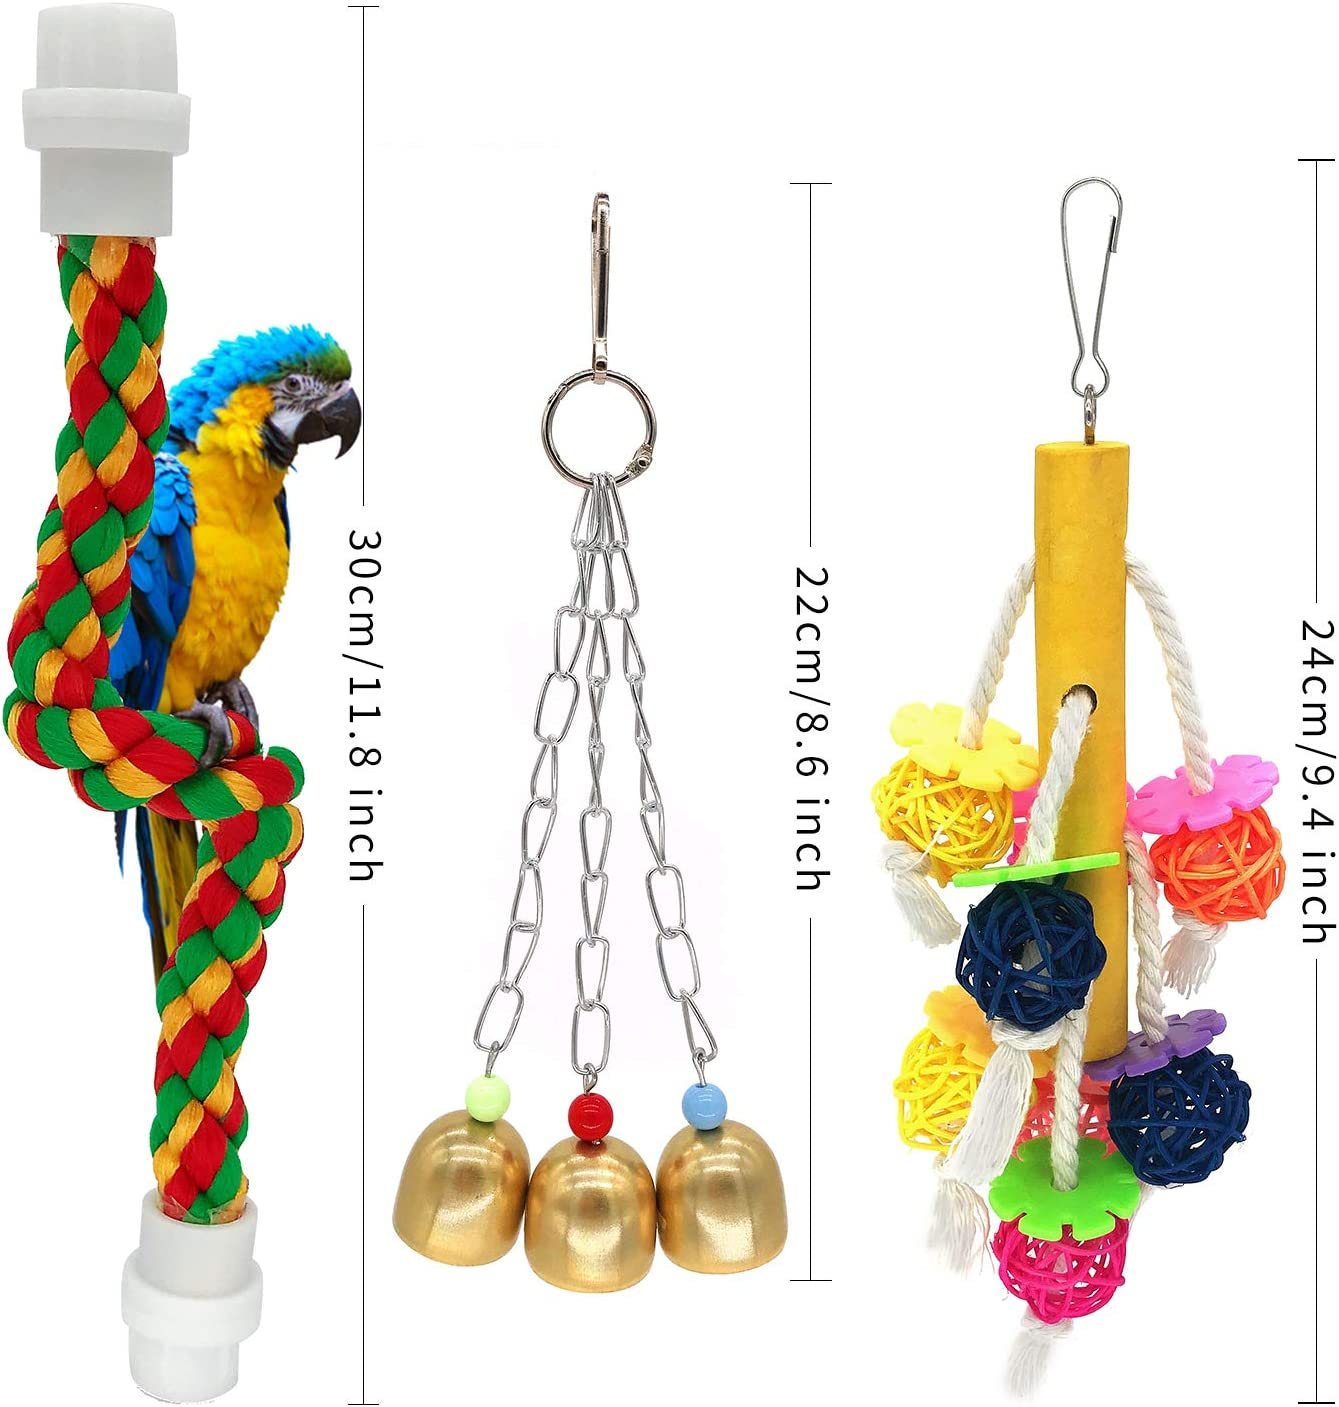 McFeddy Bird Toy Bird Swings Parrot Chew Toy,Pet Hammock Swing Toy,Hanging Bell Small Pet Bird Cage Toy Starlings Finch and Other Small Birds Love Birds Suitable for Small Parrots Macaws